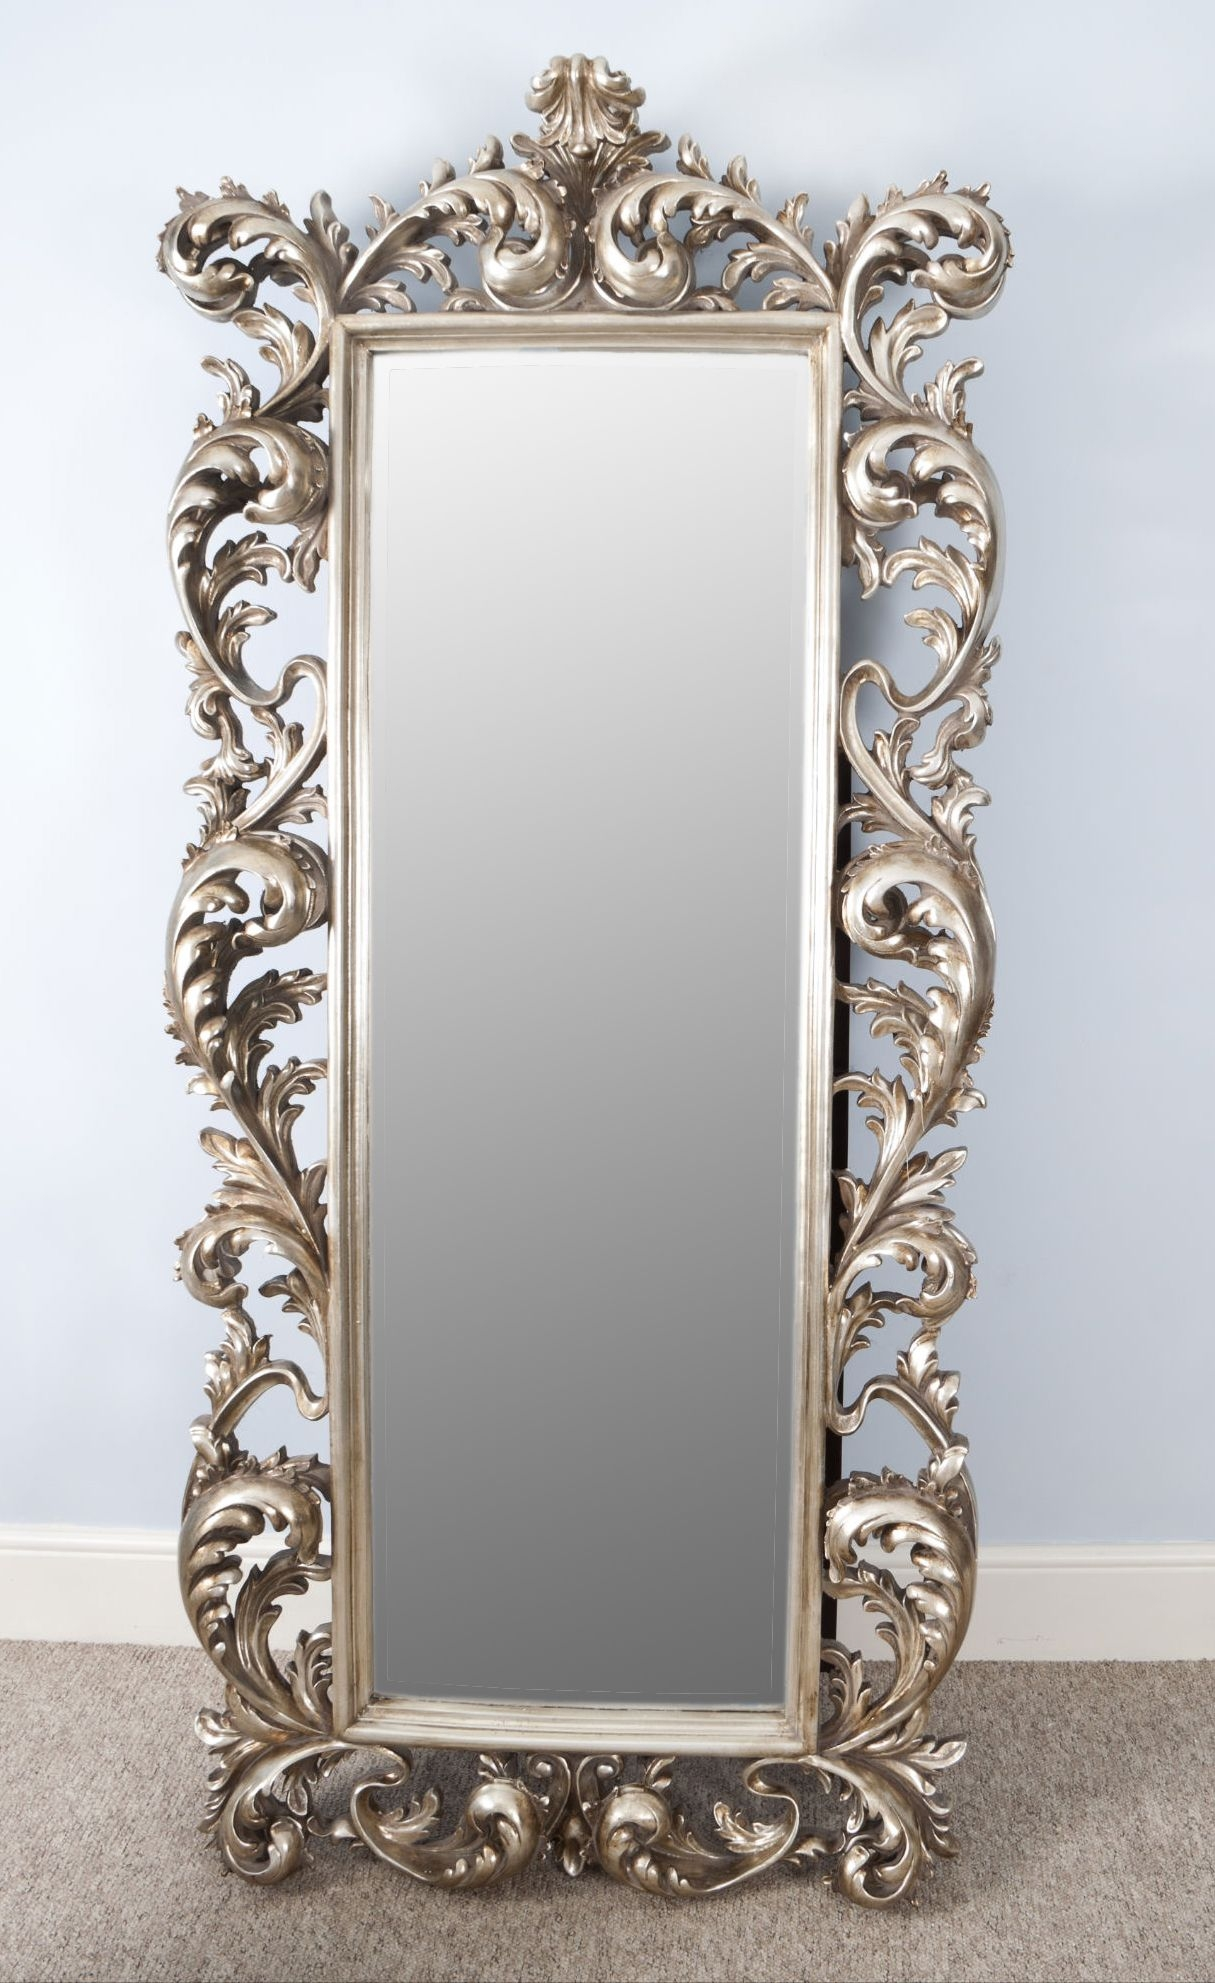 Dazzling Reproduction Mirrors With Small Framed Mirrors Plus Large Regarding Large White Rococo Mirror (Image 4 of 15)